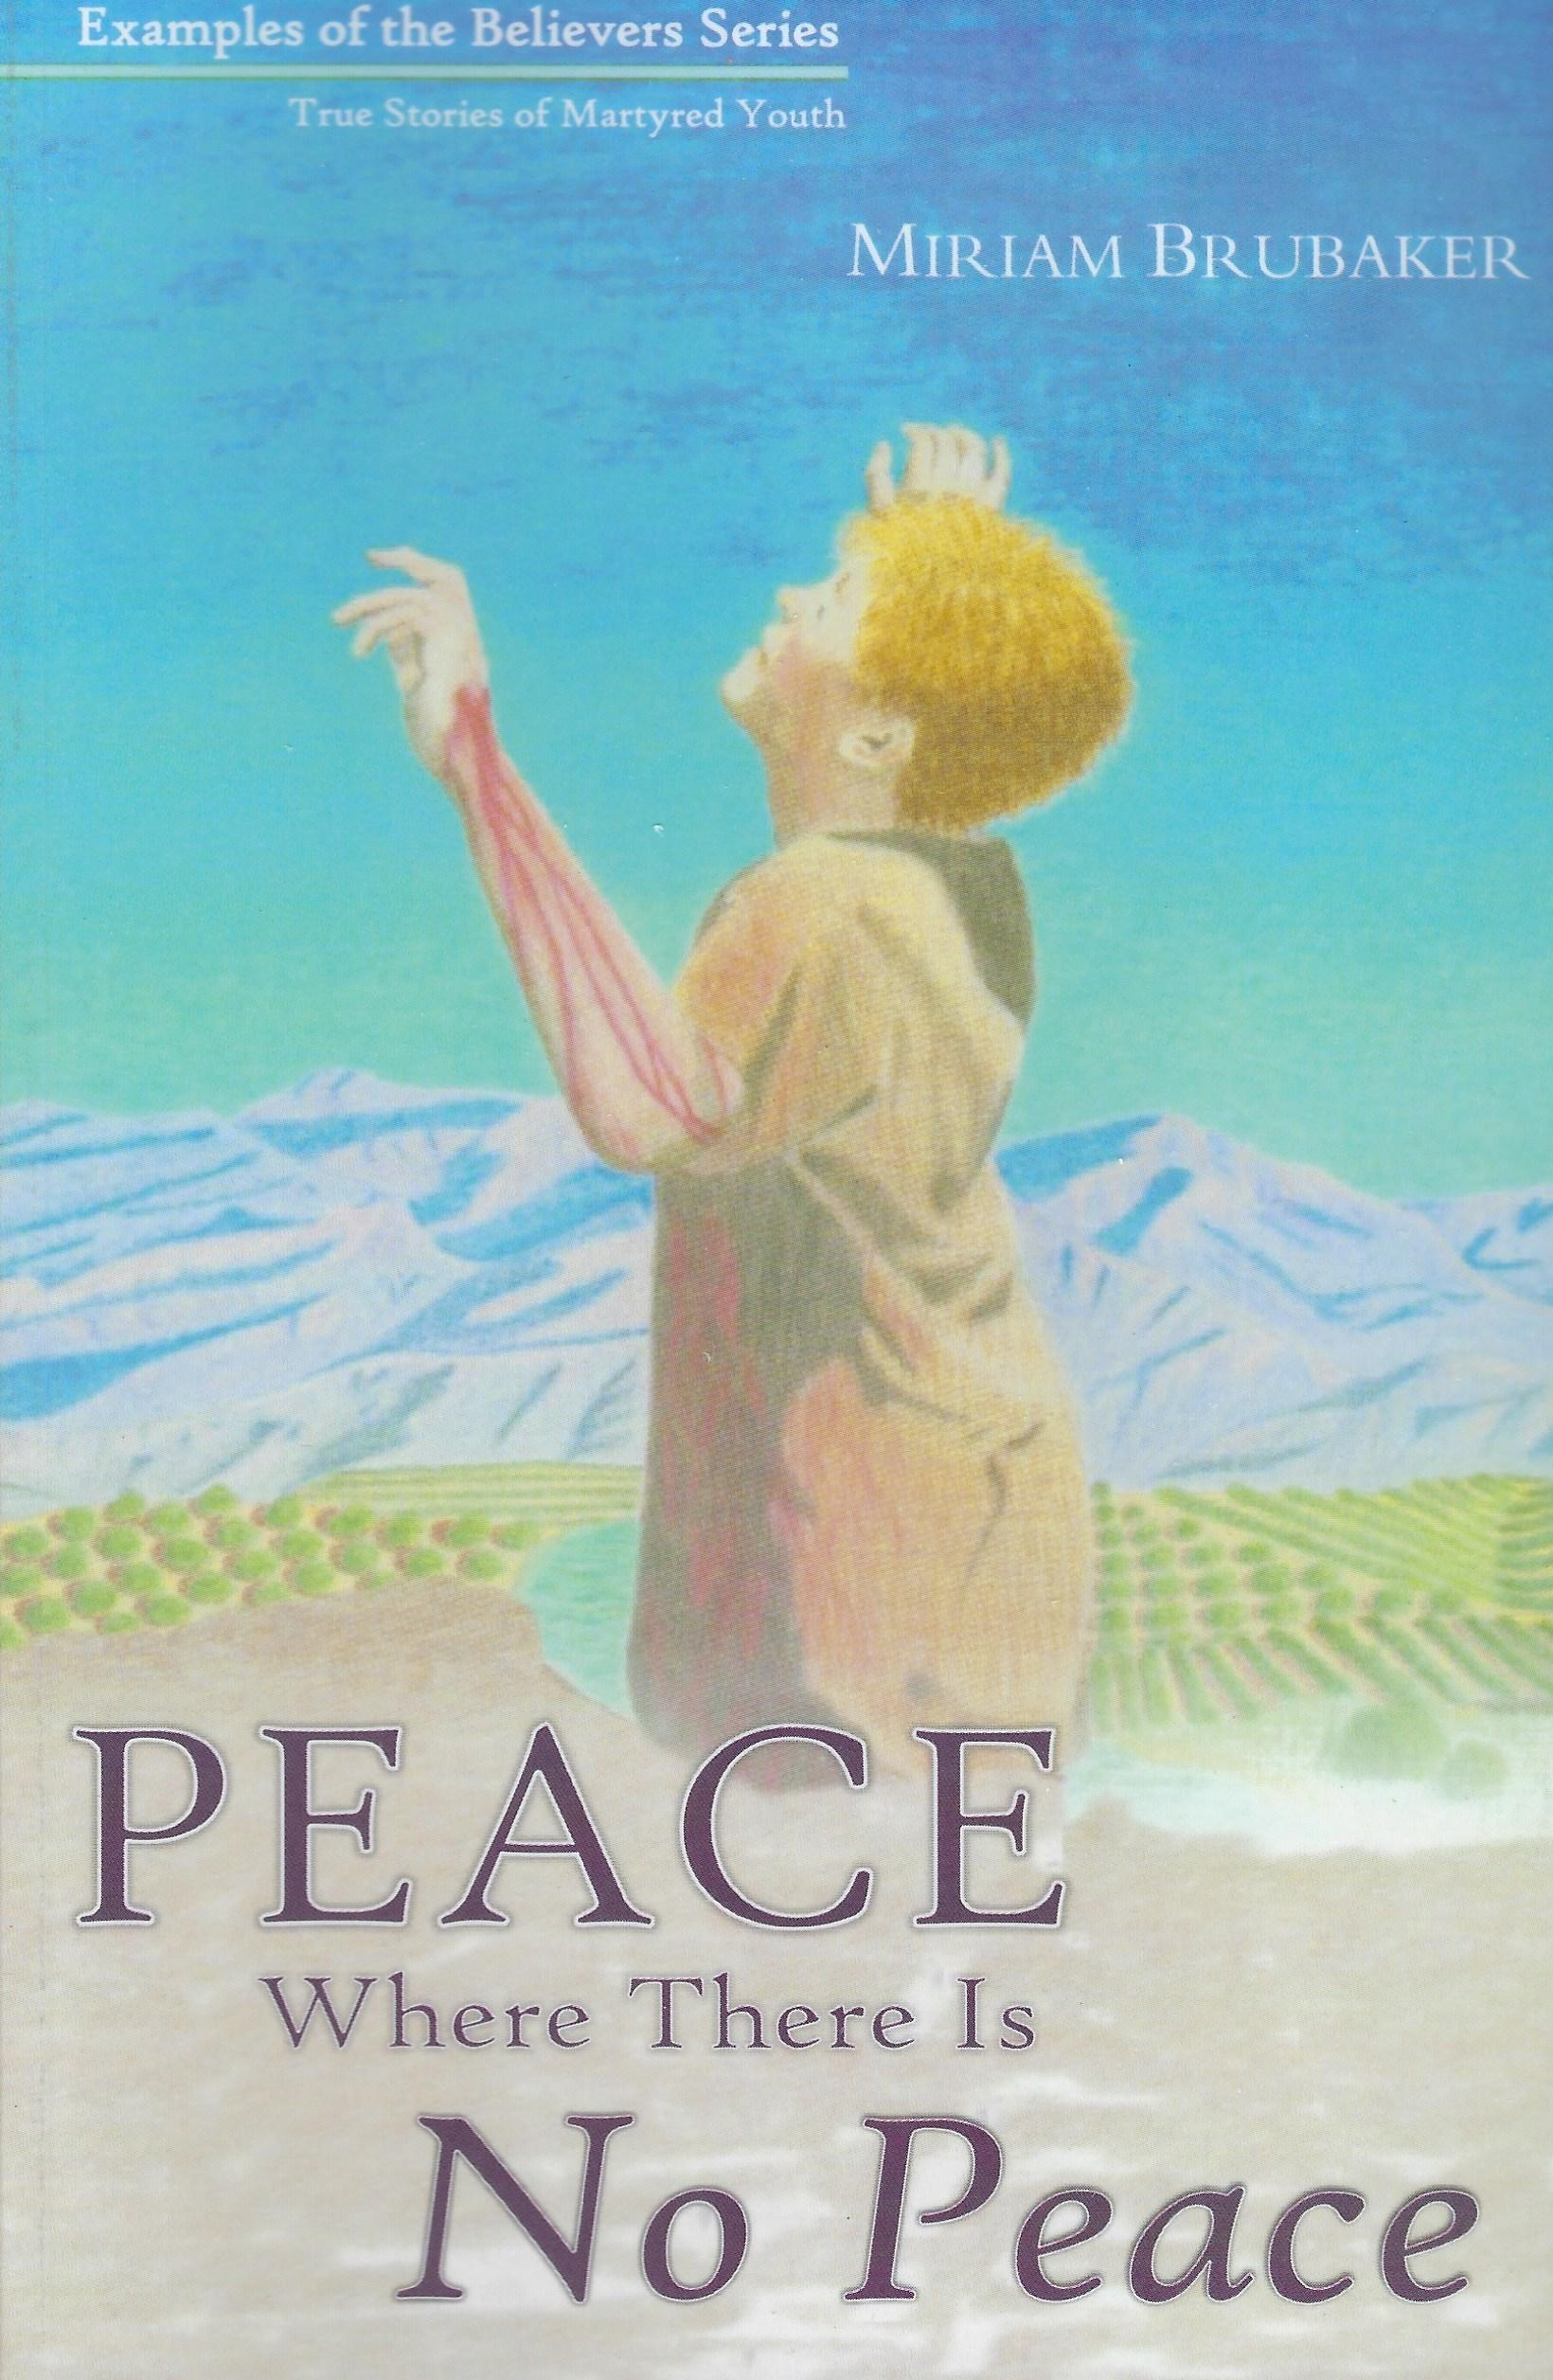 PEACE WHERE THERE IS NO PEACE Miriam Brubaker